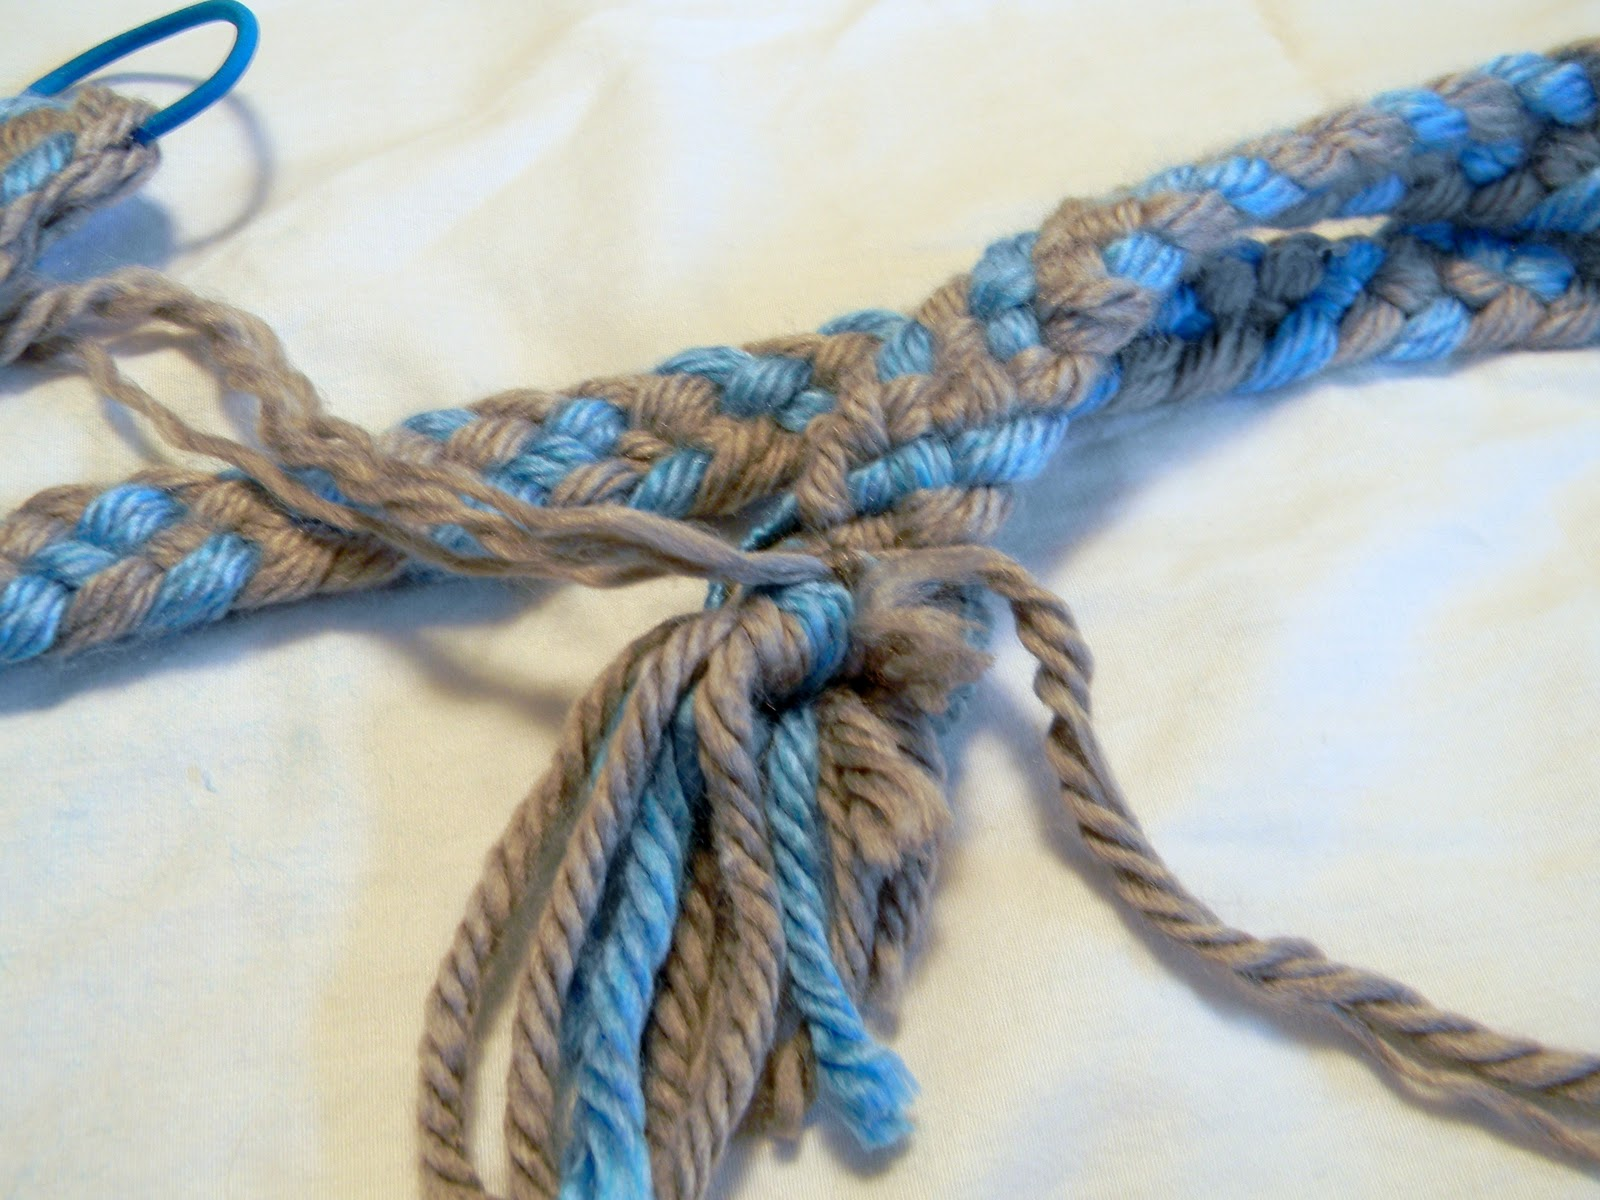 And Tie The Strand Of Yarn Around The Other End Of The Braid